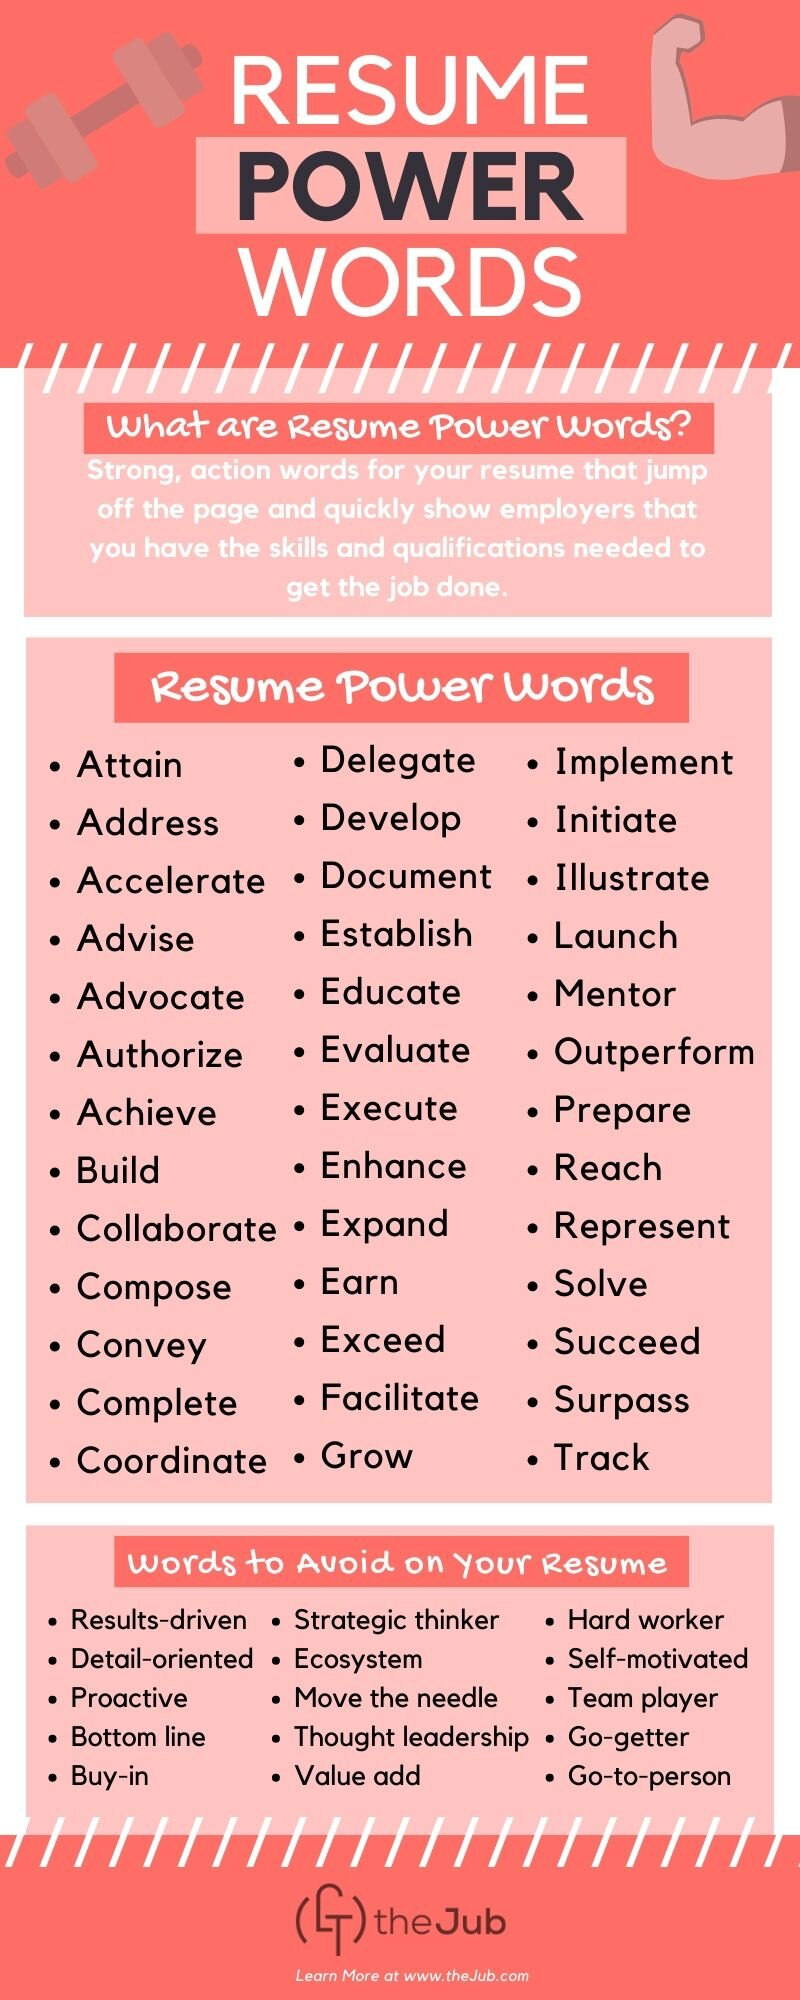 Best descriptive words for a resume cover page for a research paper template